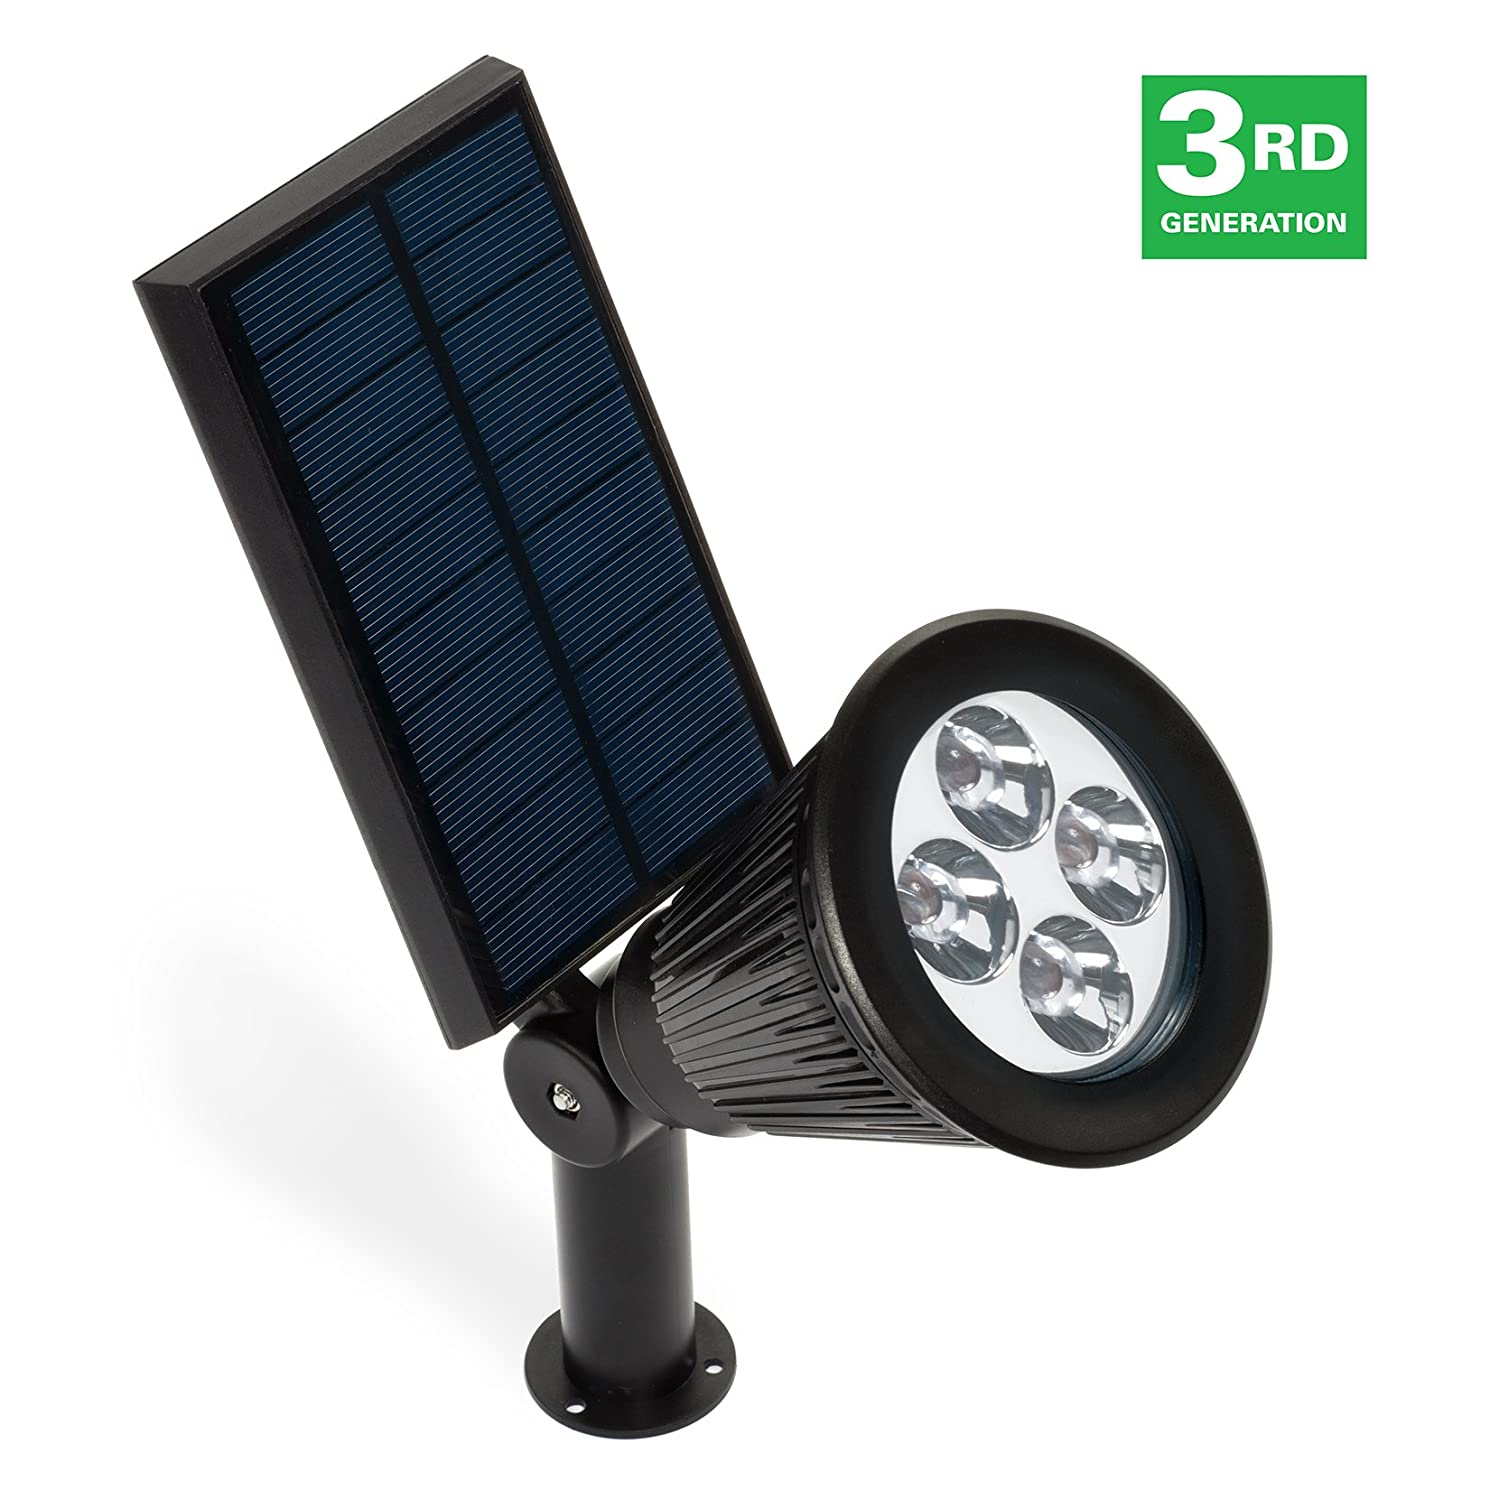 designers amazon dp flood light solar motion rechargeable lights edge path spot activated lighting designer s black led canada